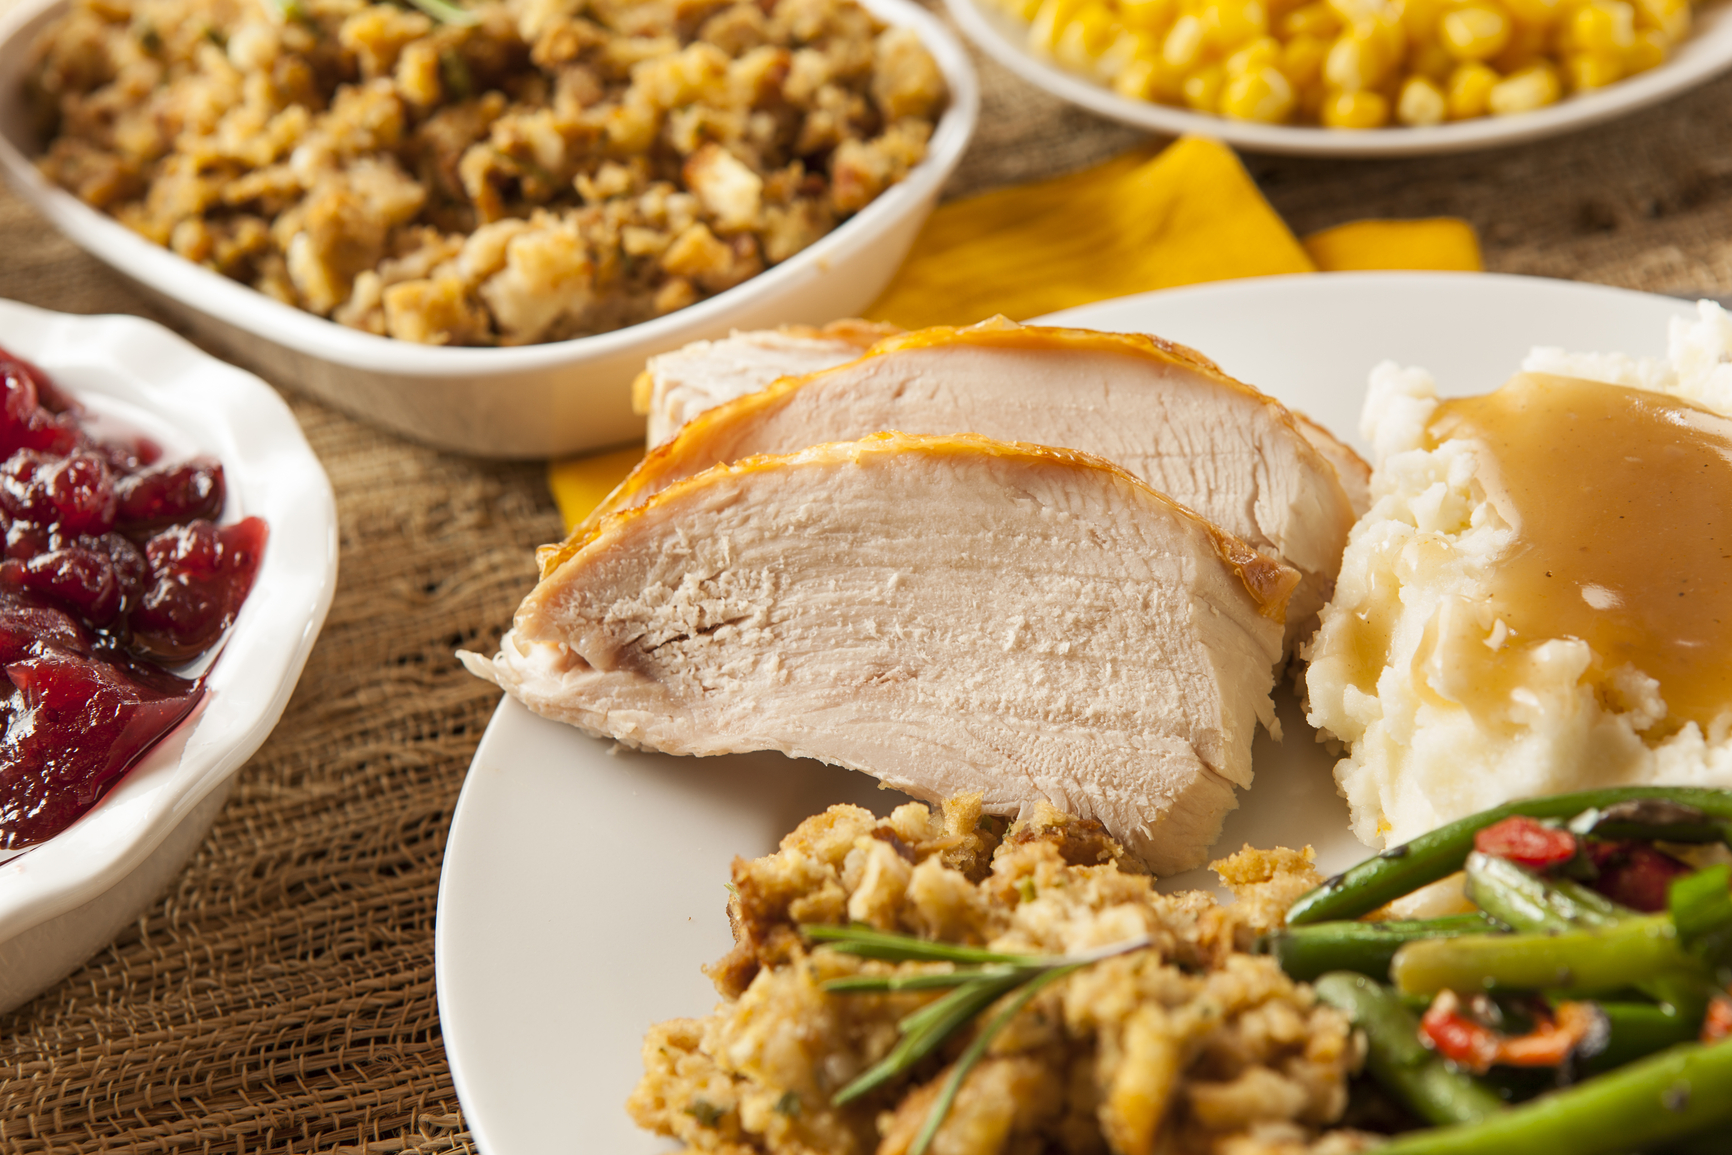 Preparing Your Home for the Thanksgiving Feast